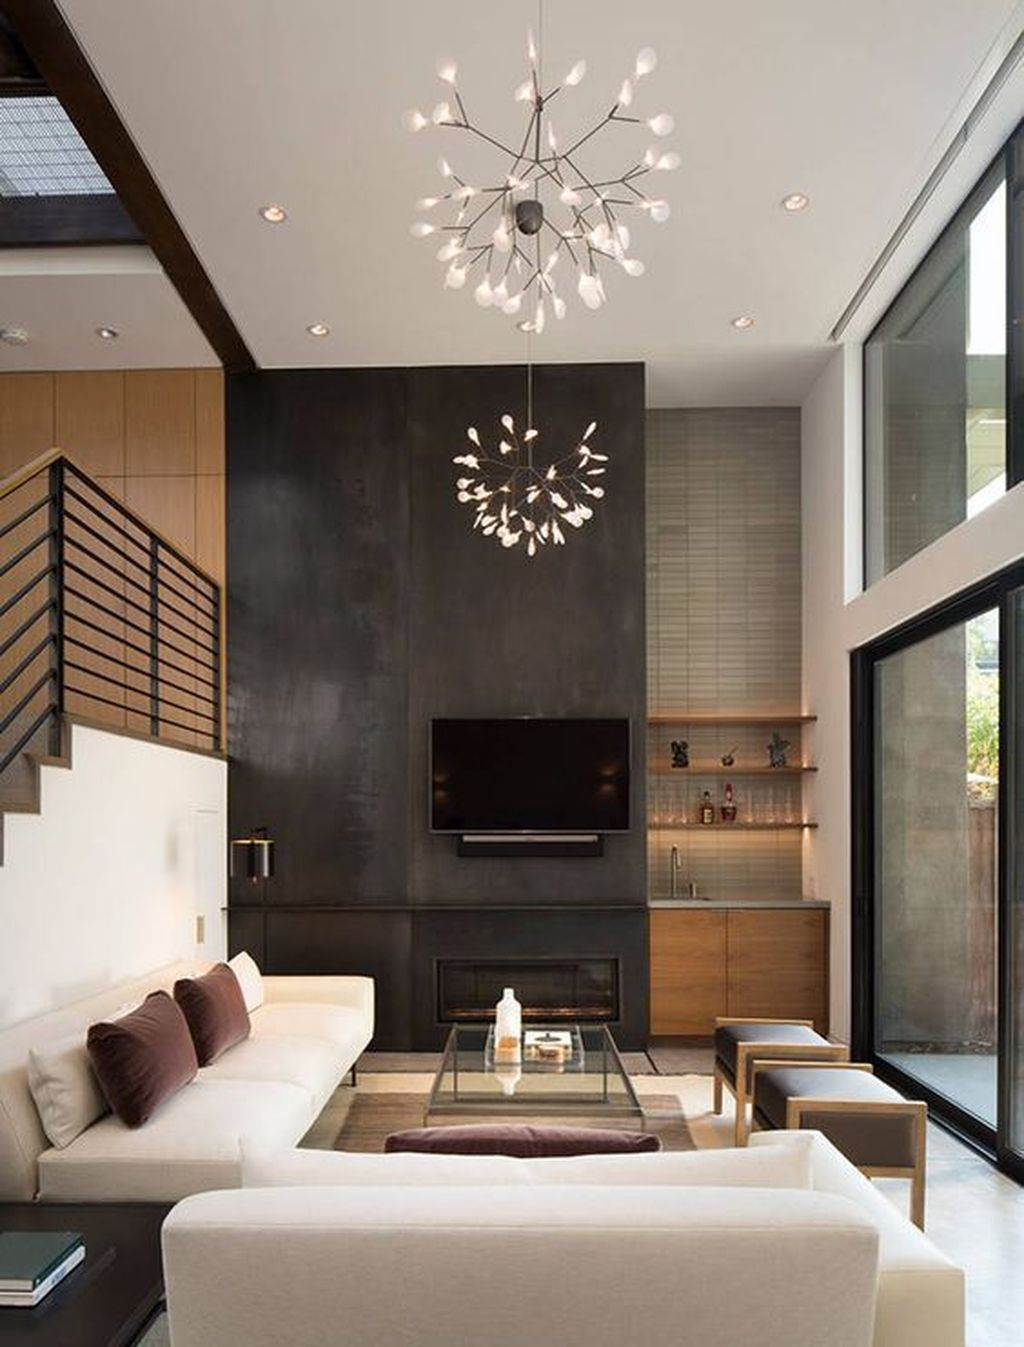 Marvelous Interior Design Ideas For Home That Looks Cool 38